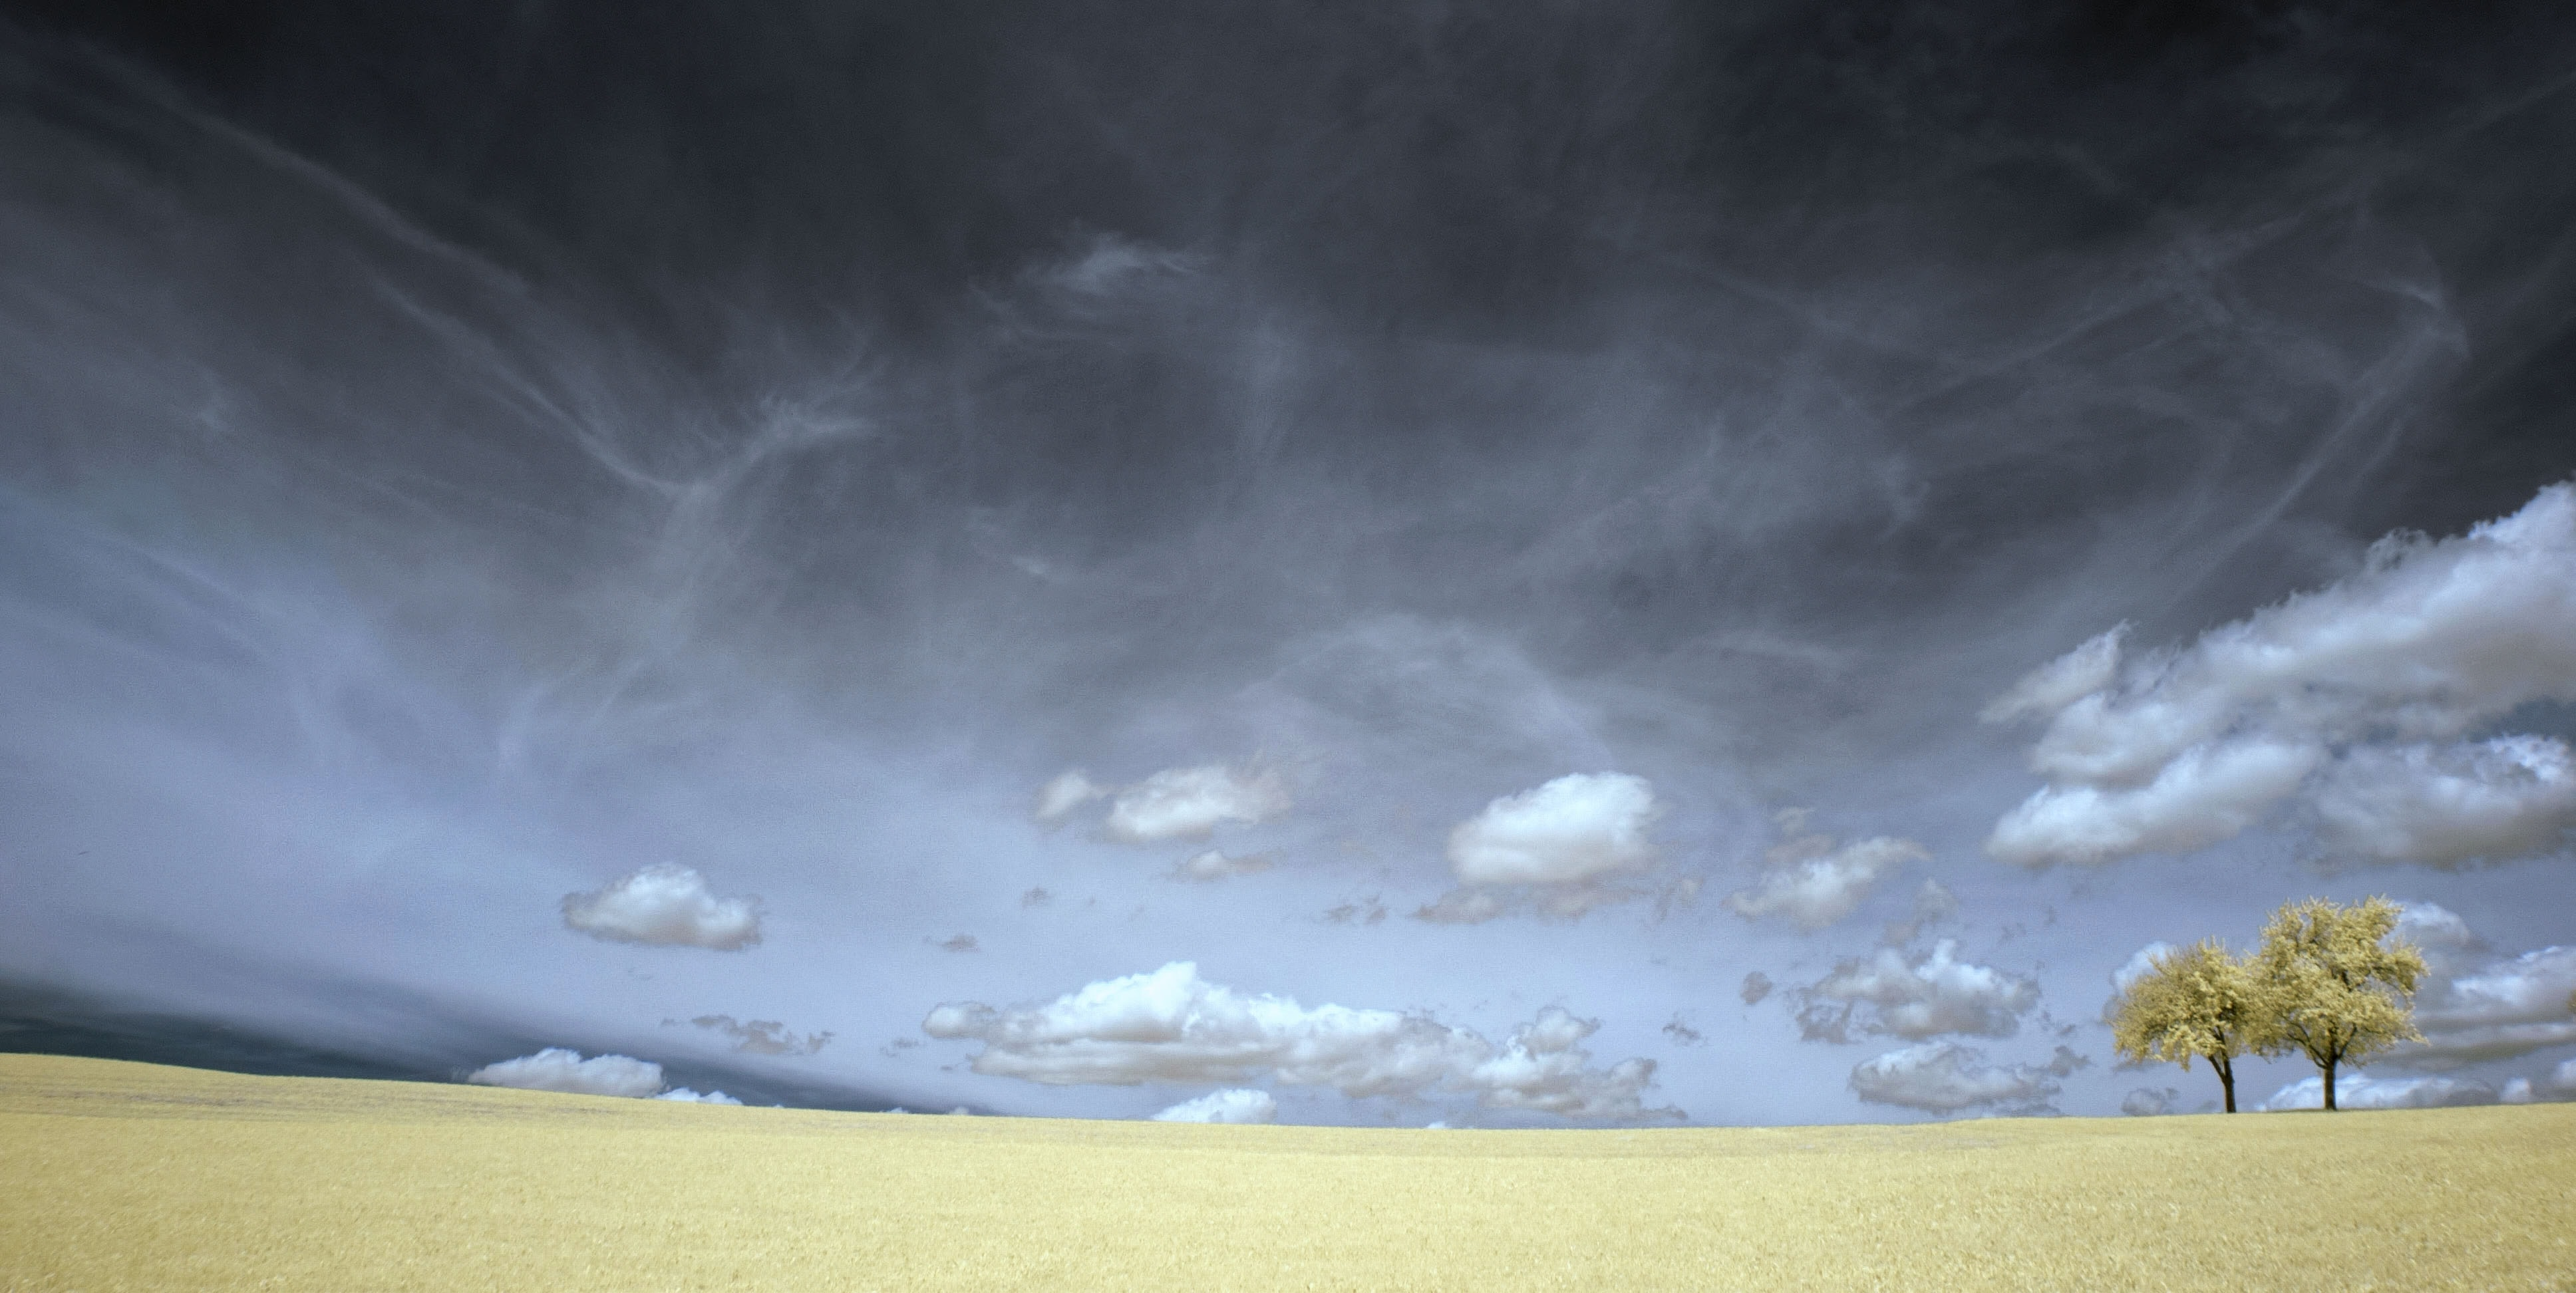 A dark, stormy sky above two lone trees in a barren field